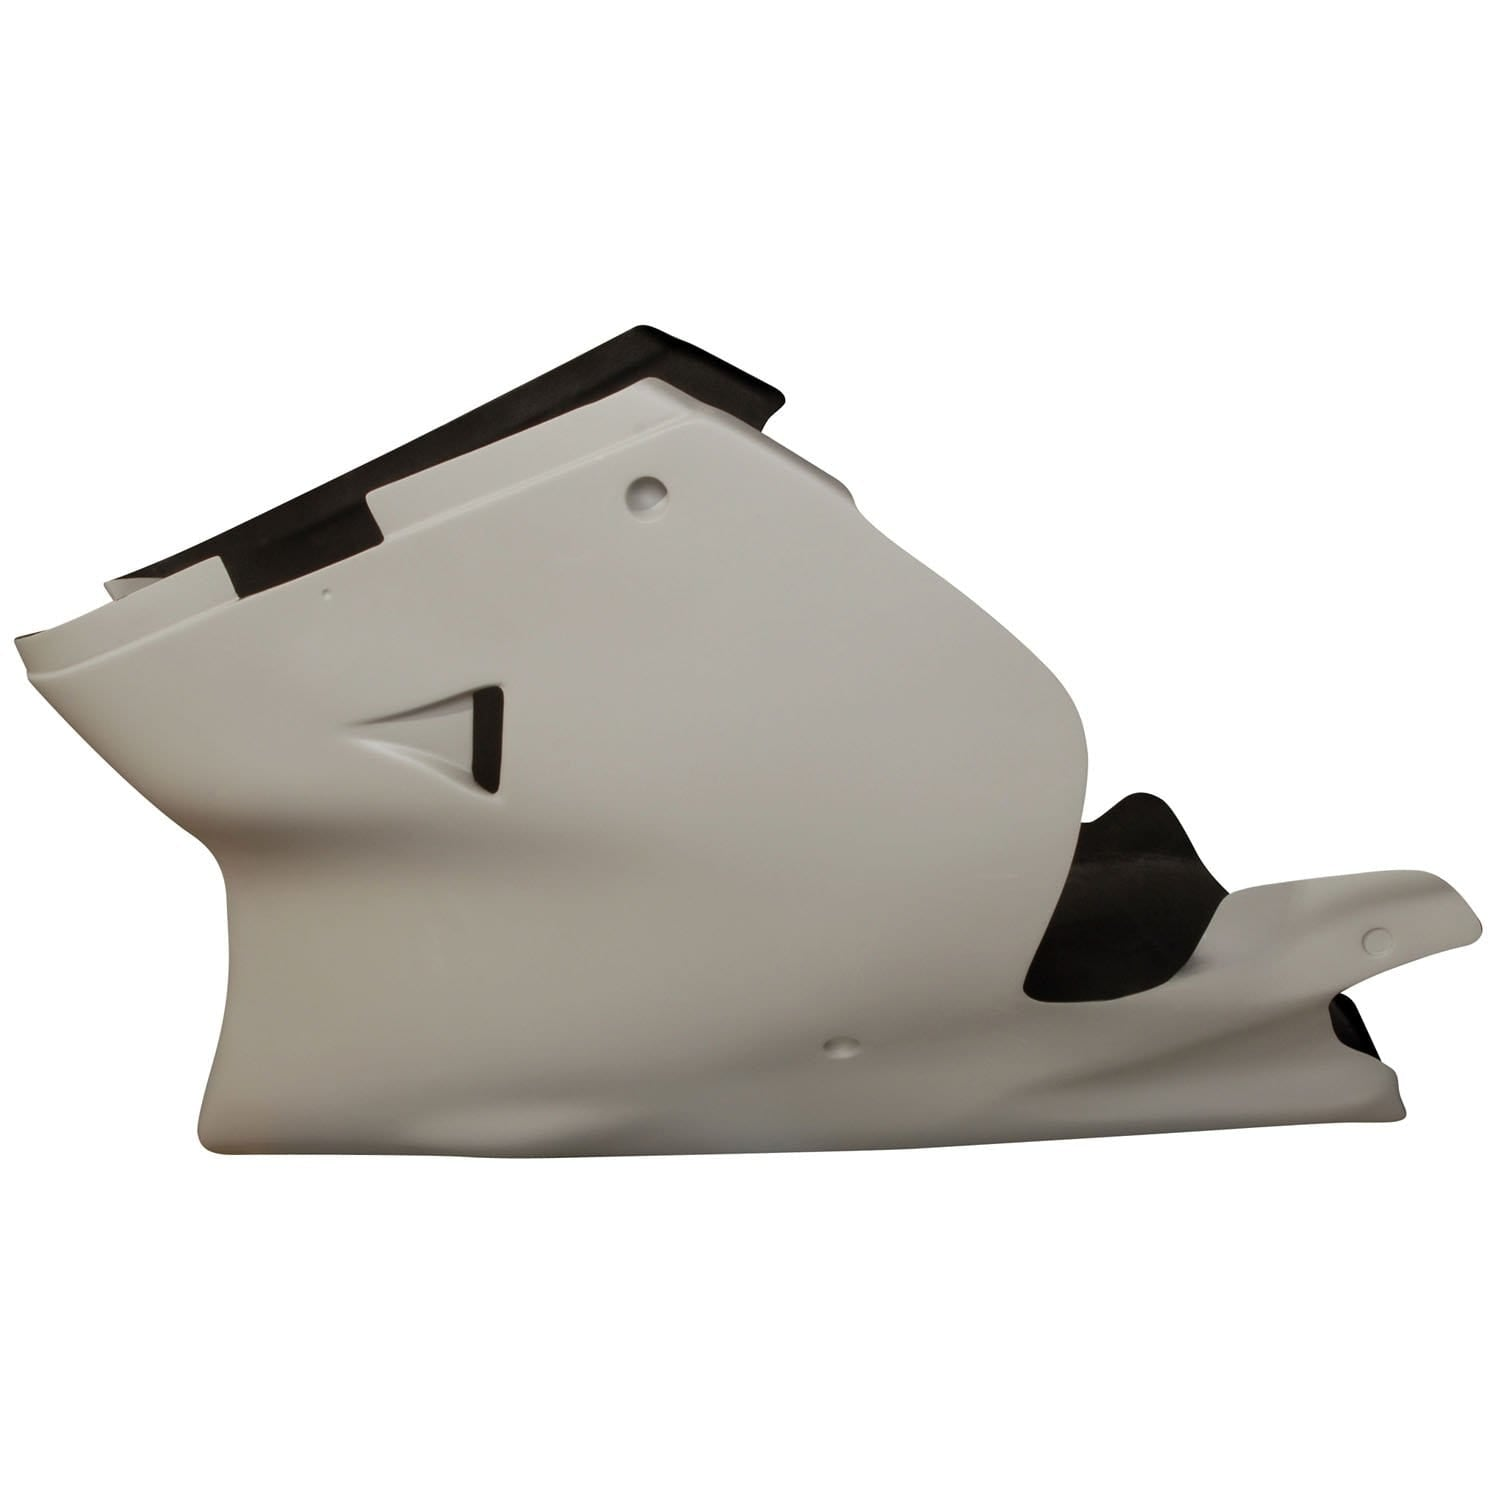 Aprilia RS250 '00-04 Lower Fairing - Pro Series - Woodcraft Technologies - Motorcycle Parts